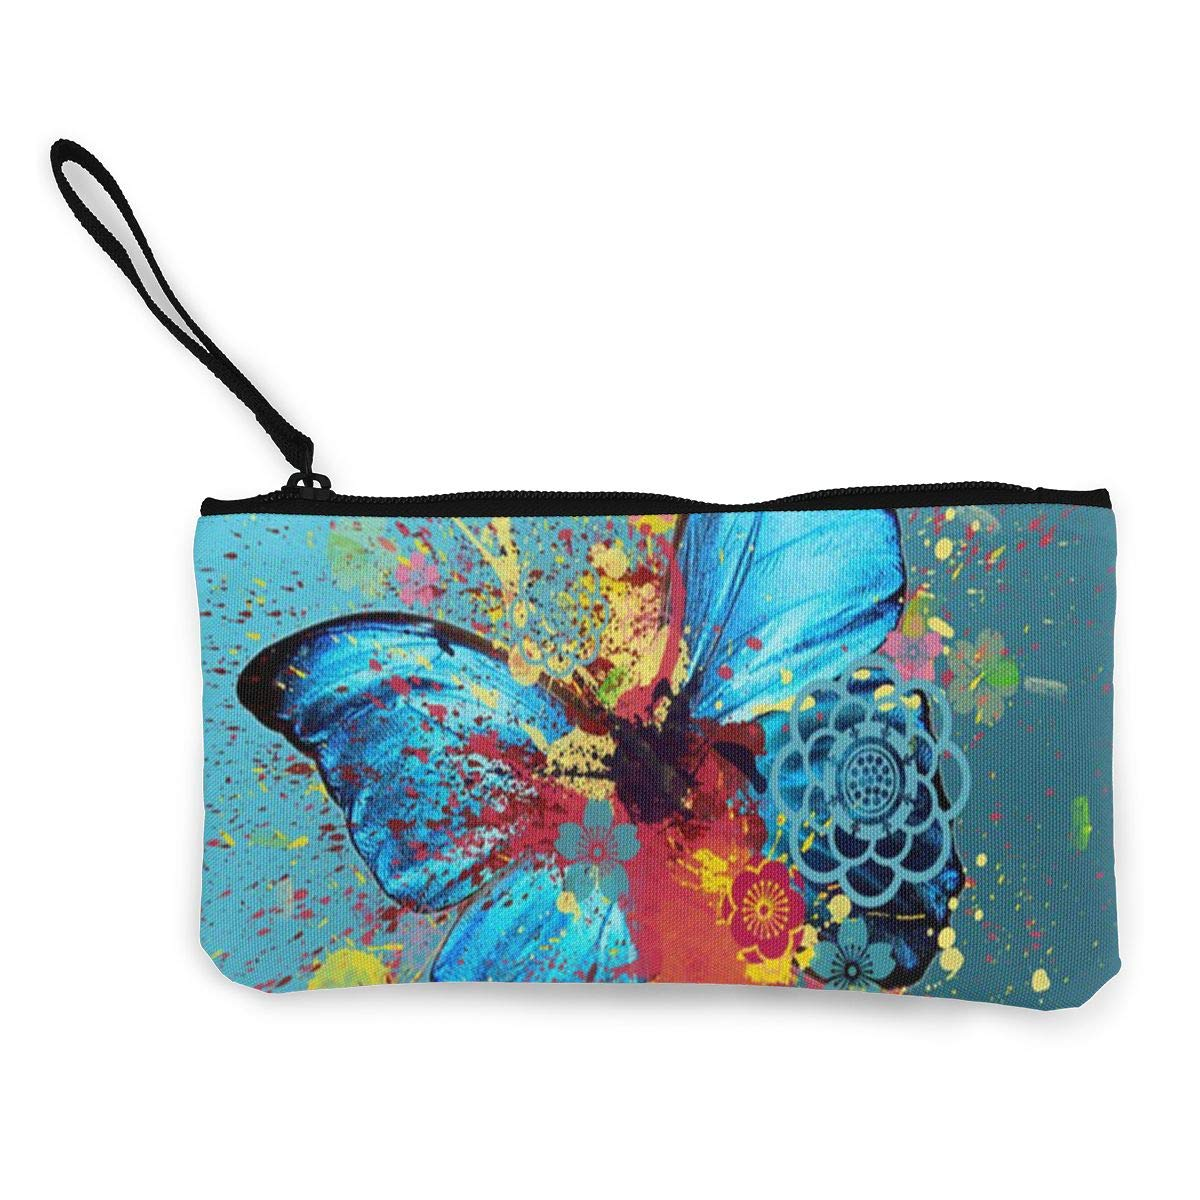 Cellphone Bag With Handle Make Up Bag DH14hjsdDEE Beautiful Butterfly Watercolor Zipper Canvas Coin Purse Wallet